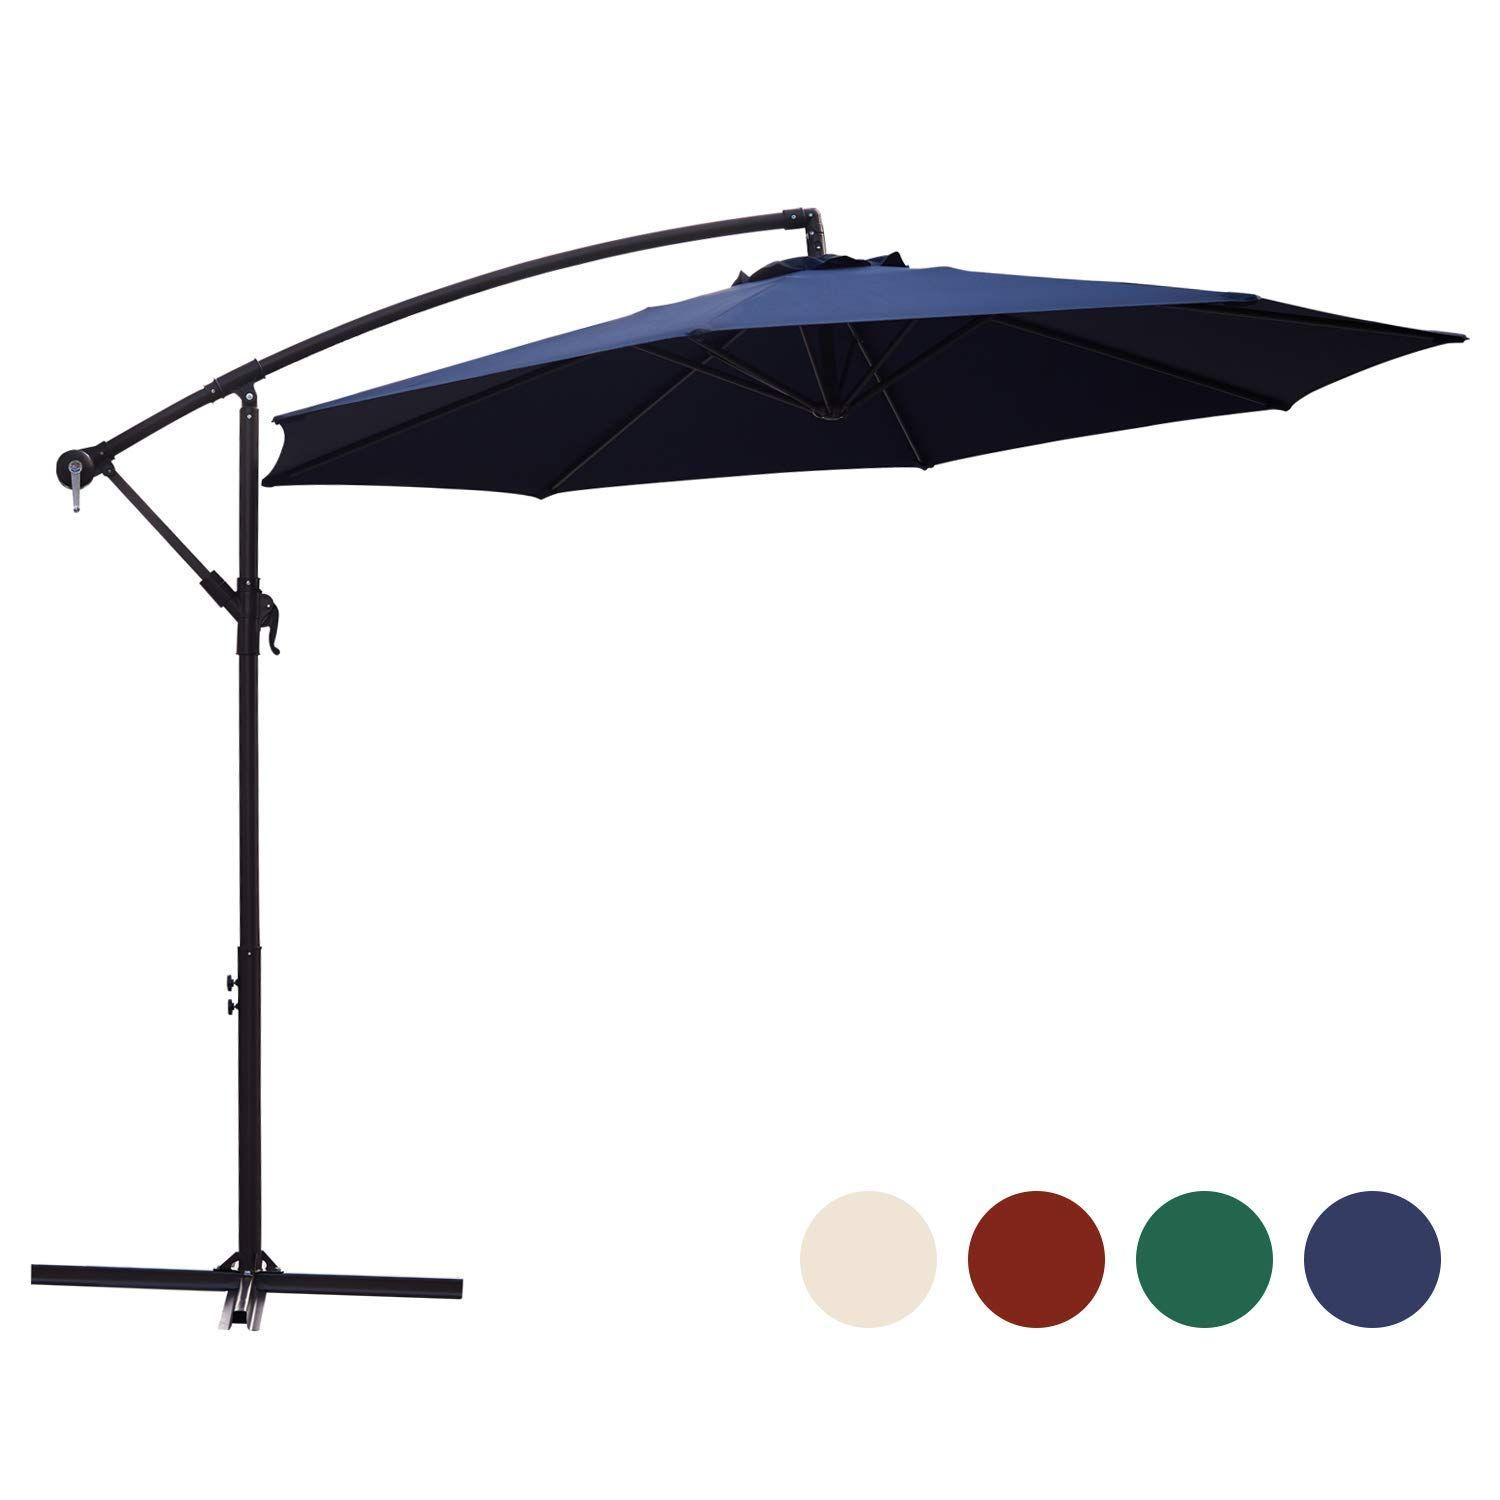 Kingyes Cantilever Umbrella Umbrellas Backyard In 2020 Outdoor Umbrella Decks Backyard Market Umbrella